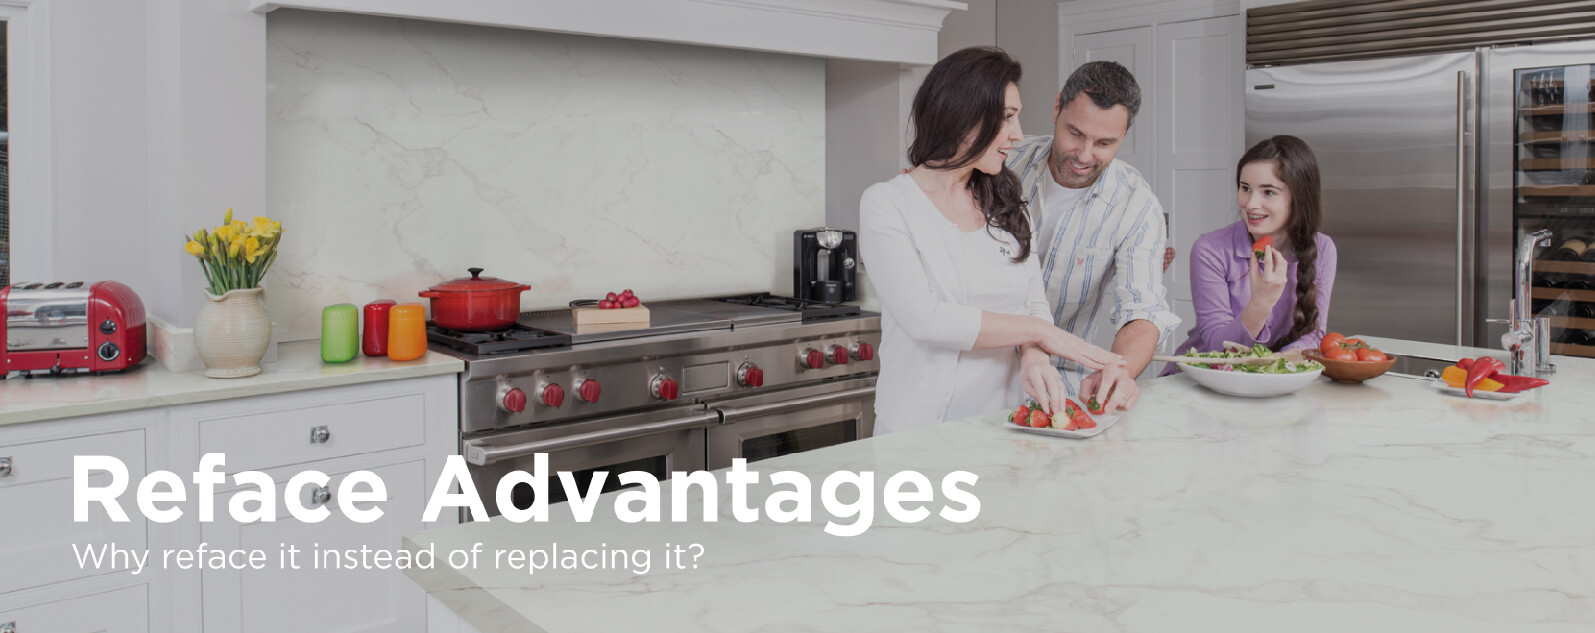 Reface Advantages